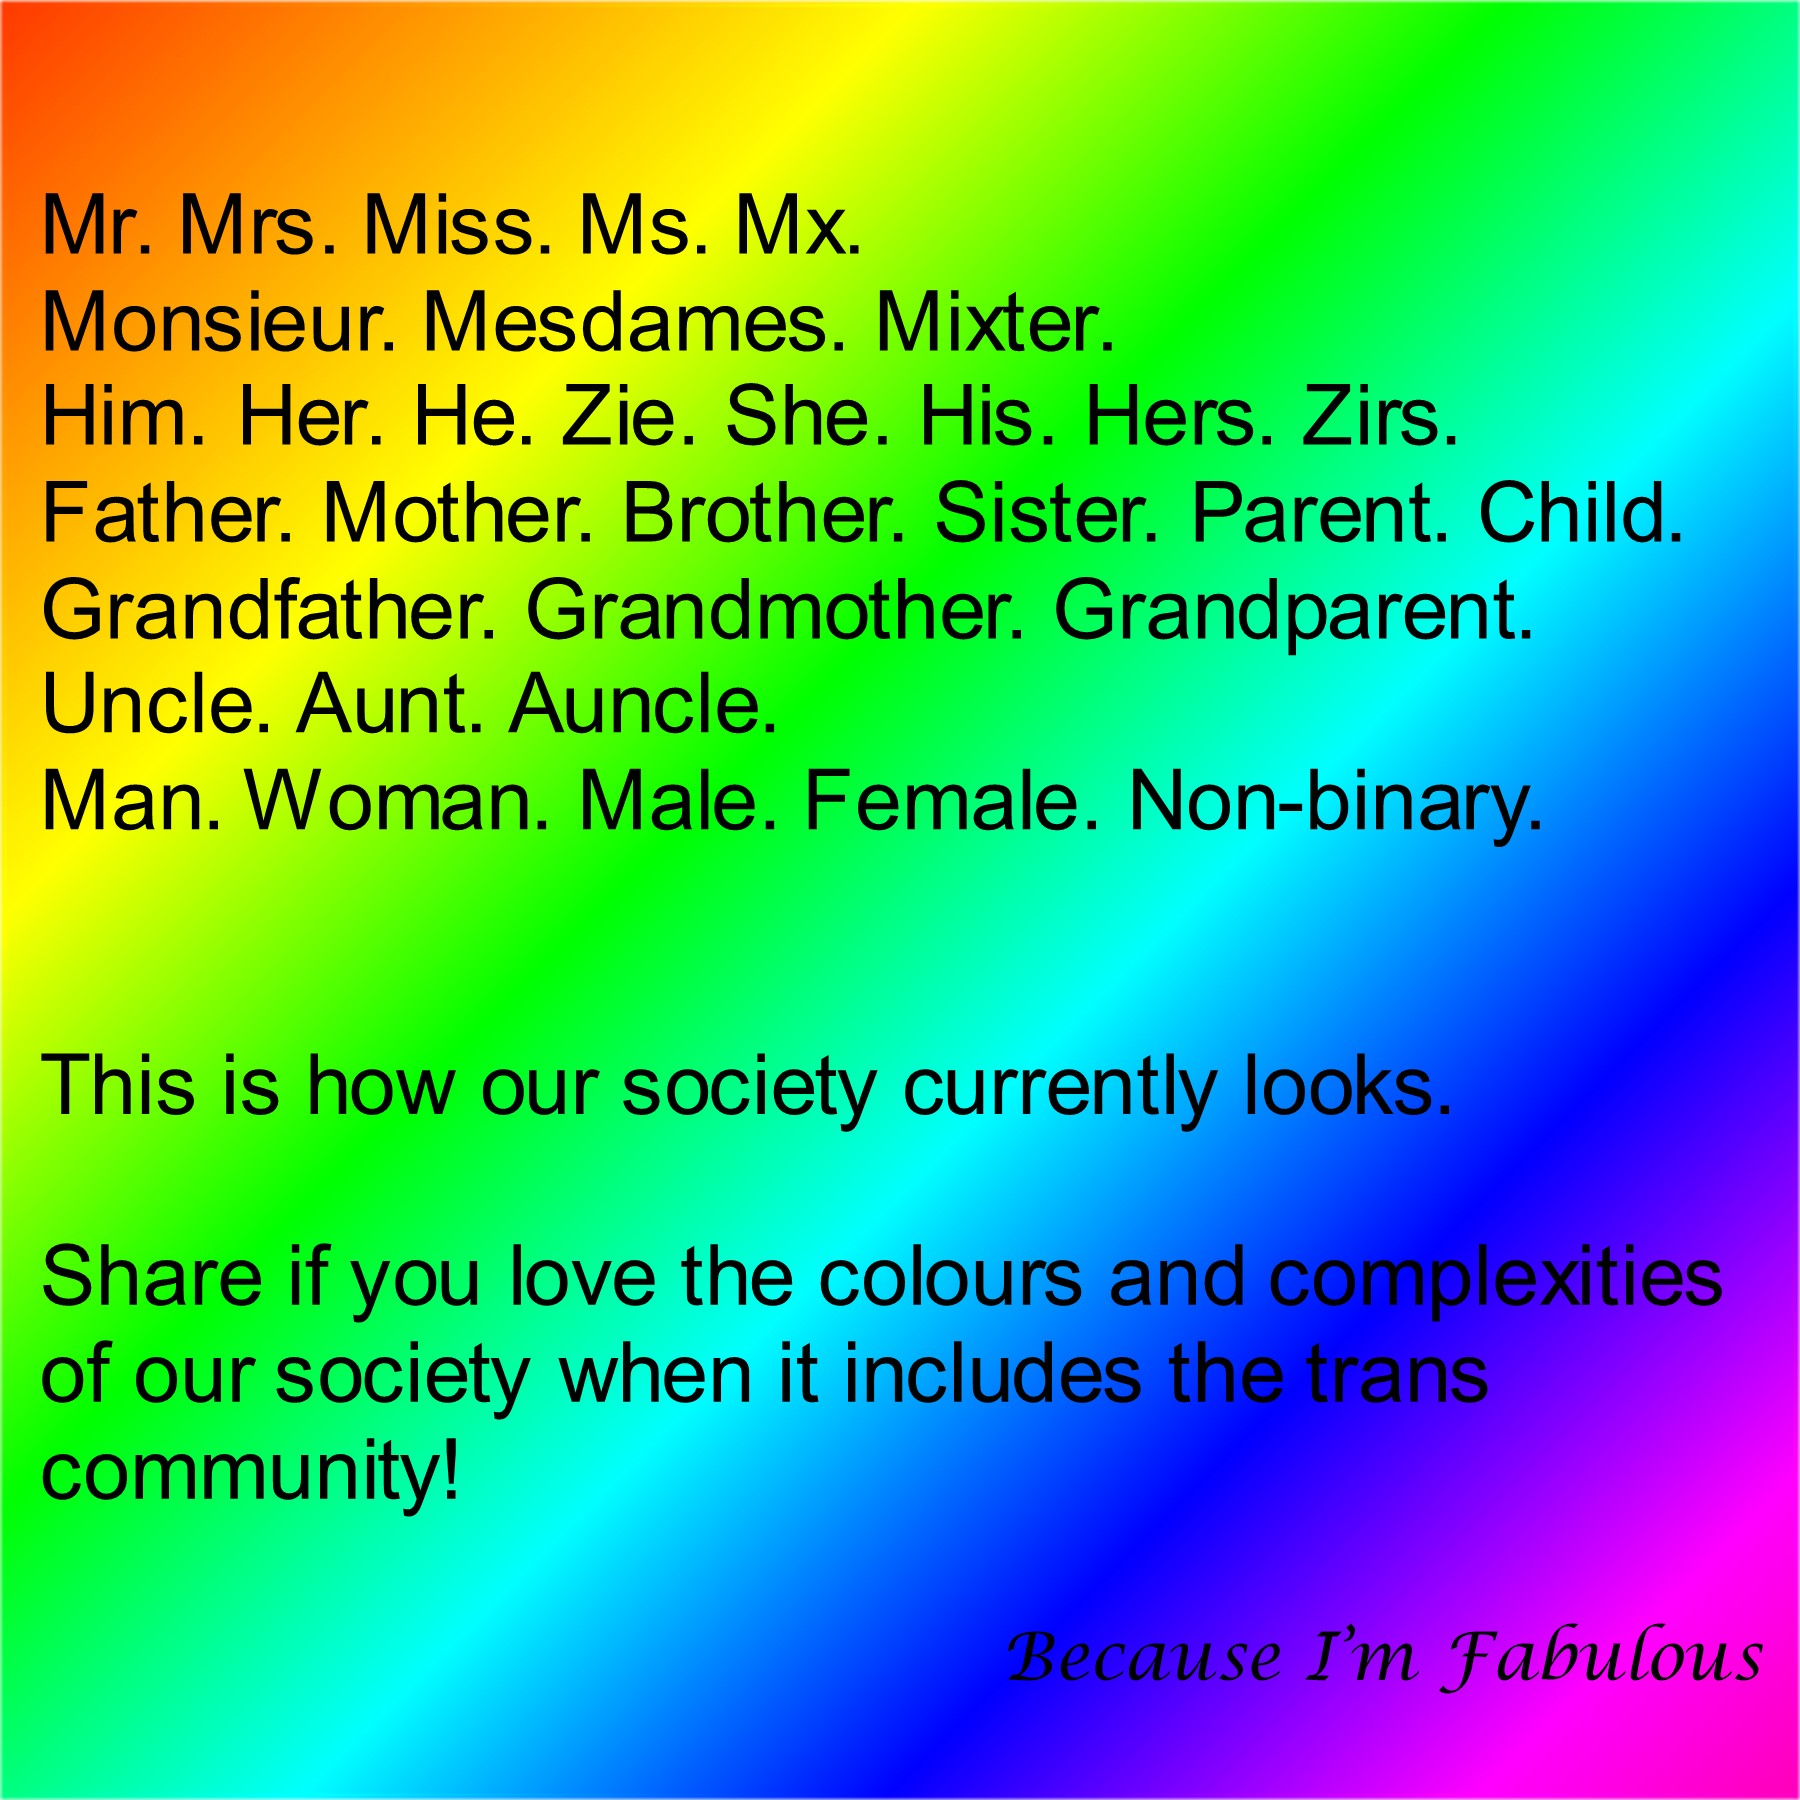 genders and pronouns